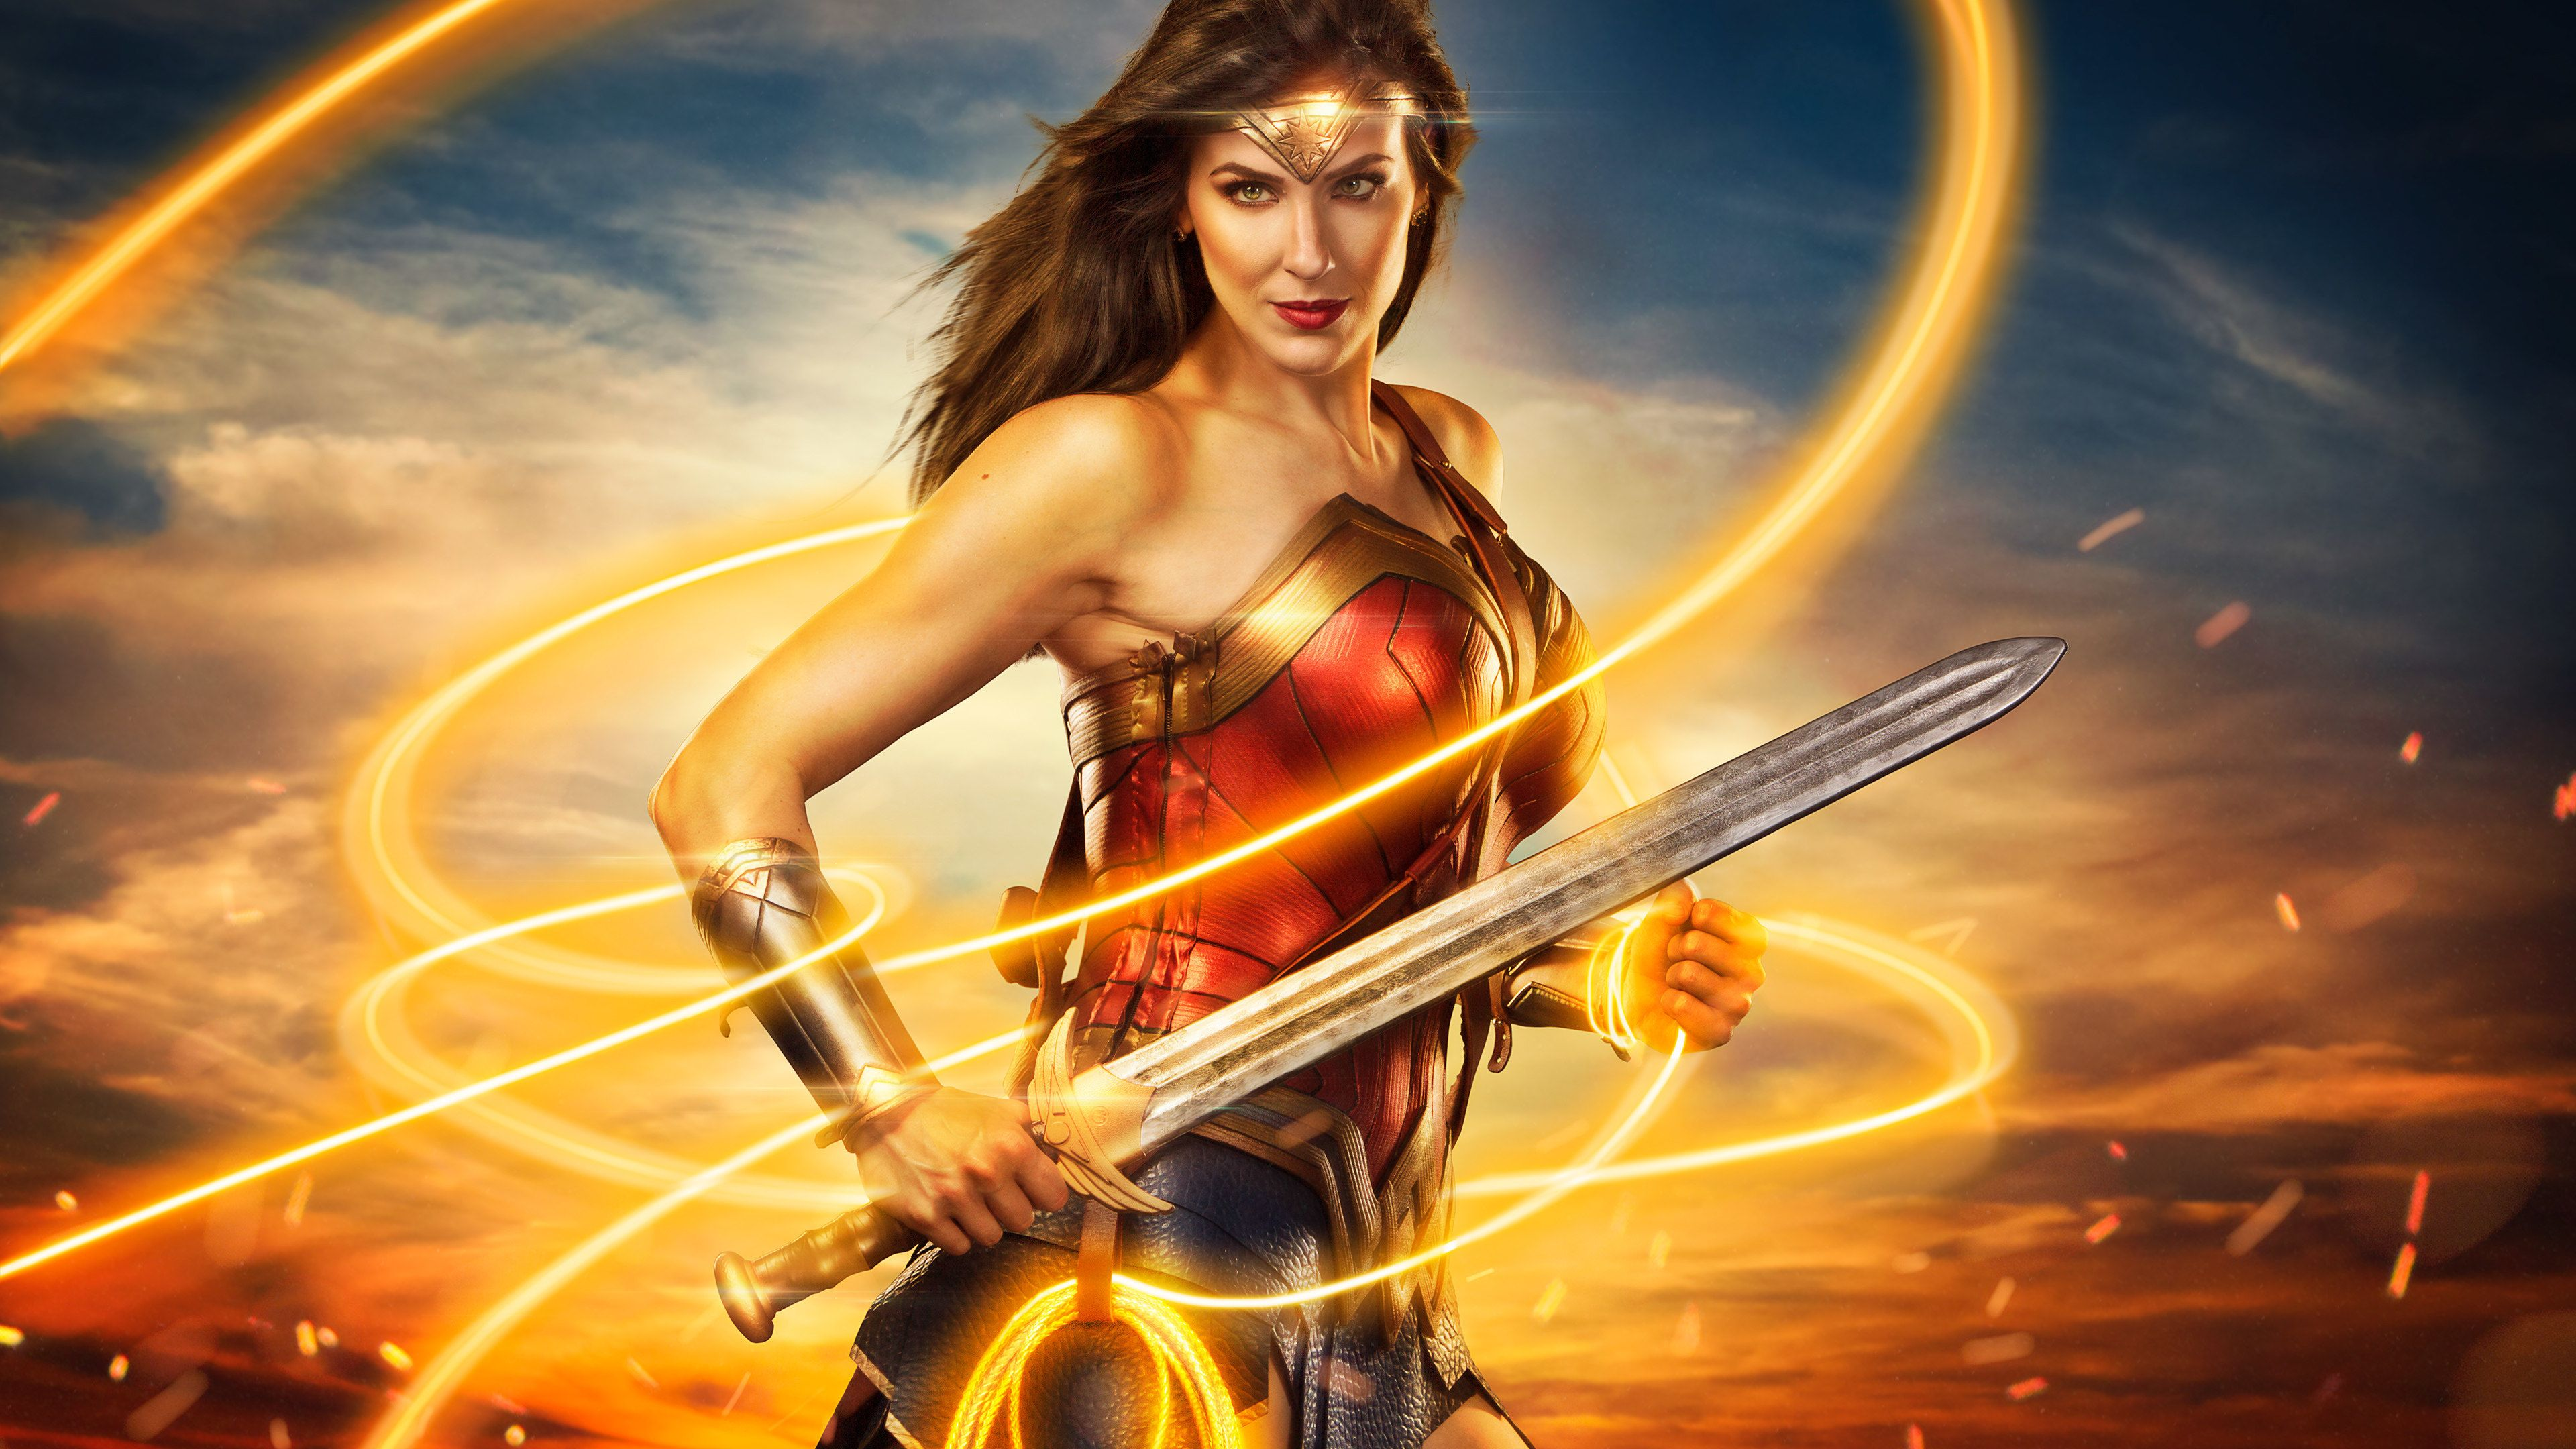 Wonder Woman 4k Cosplay Wonder Woman Wallpapers Superheroes Wallpapers Hd Wallpapers Cosplay Wallpapers 4k Wallp Wonder Woman Batman Wonder Woman Superhero